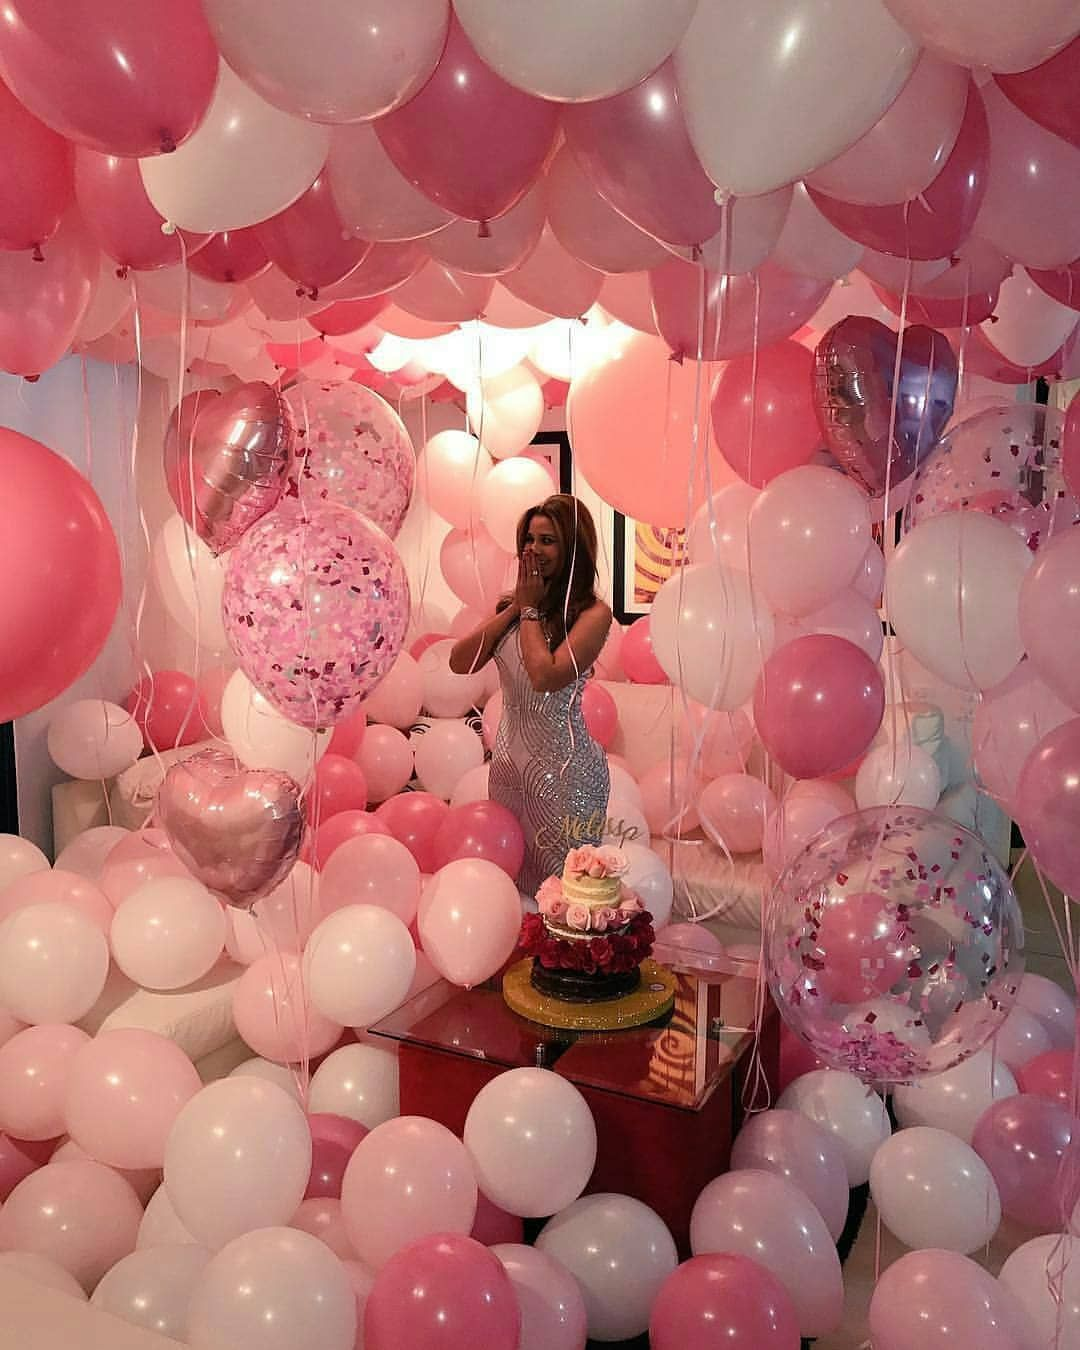 Comment Your Birthday Below And Find Your Instagram Twin Cakebakeoffng Birthday Goals 21st Birthday Decorations Birthday Decorations